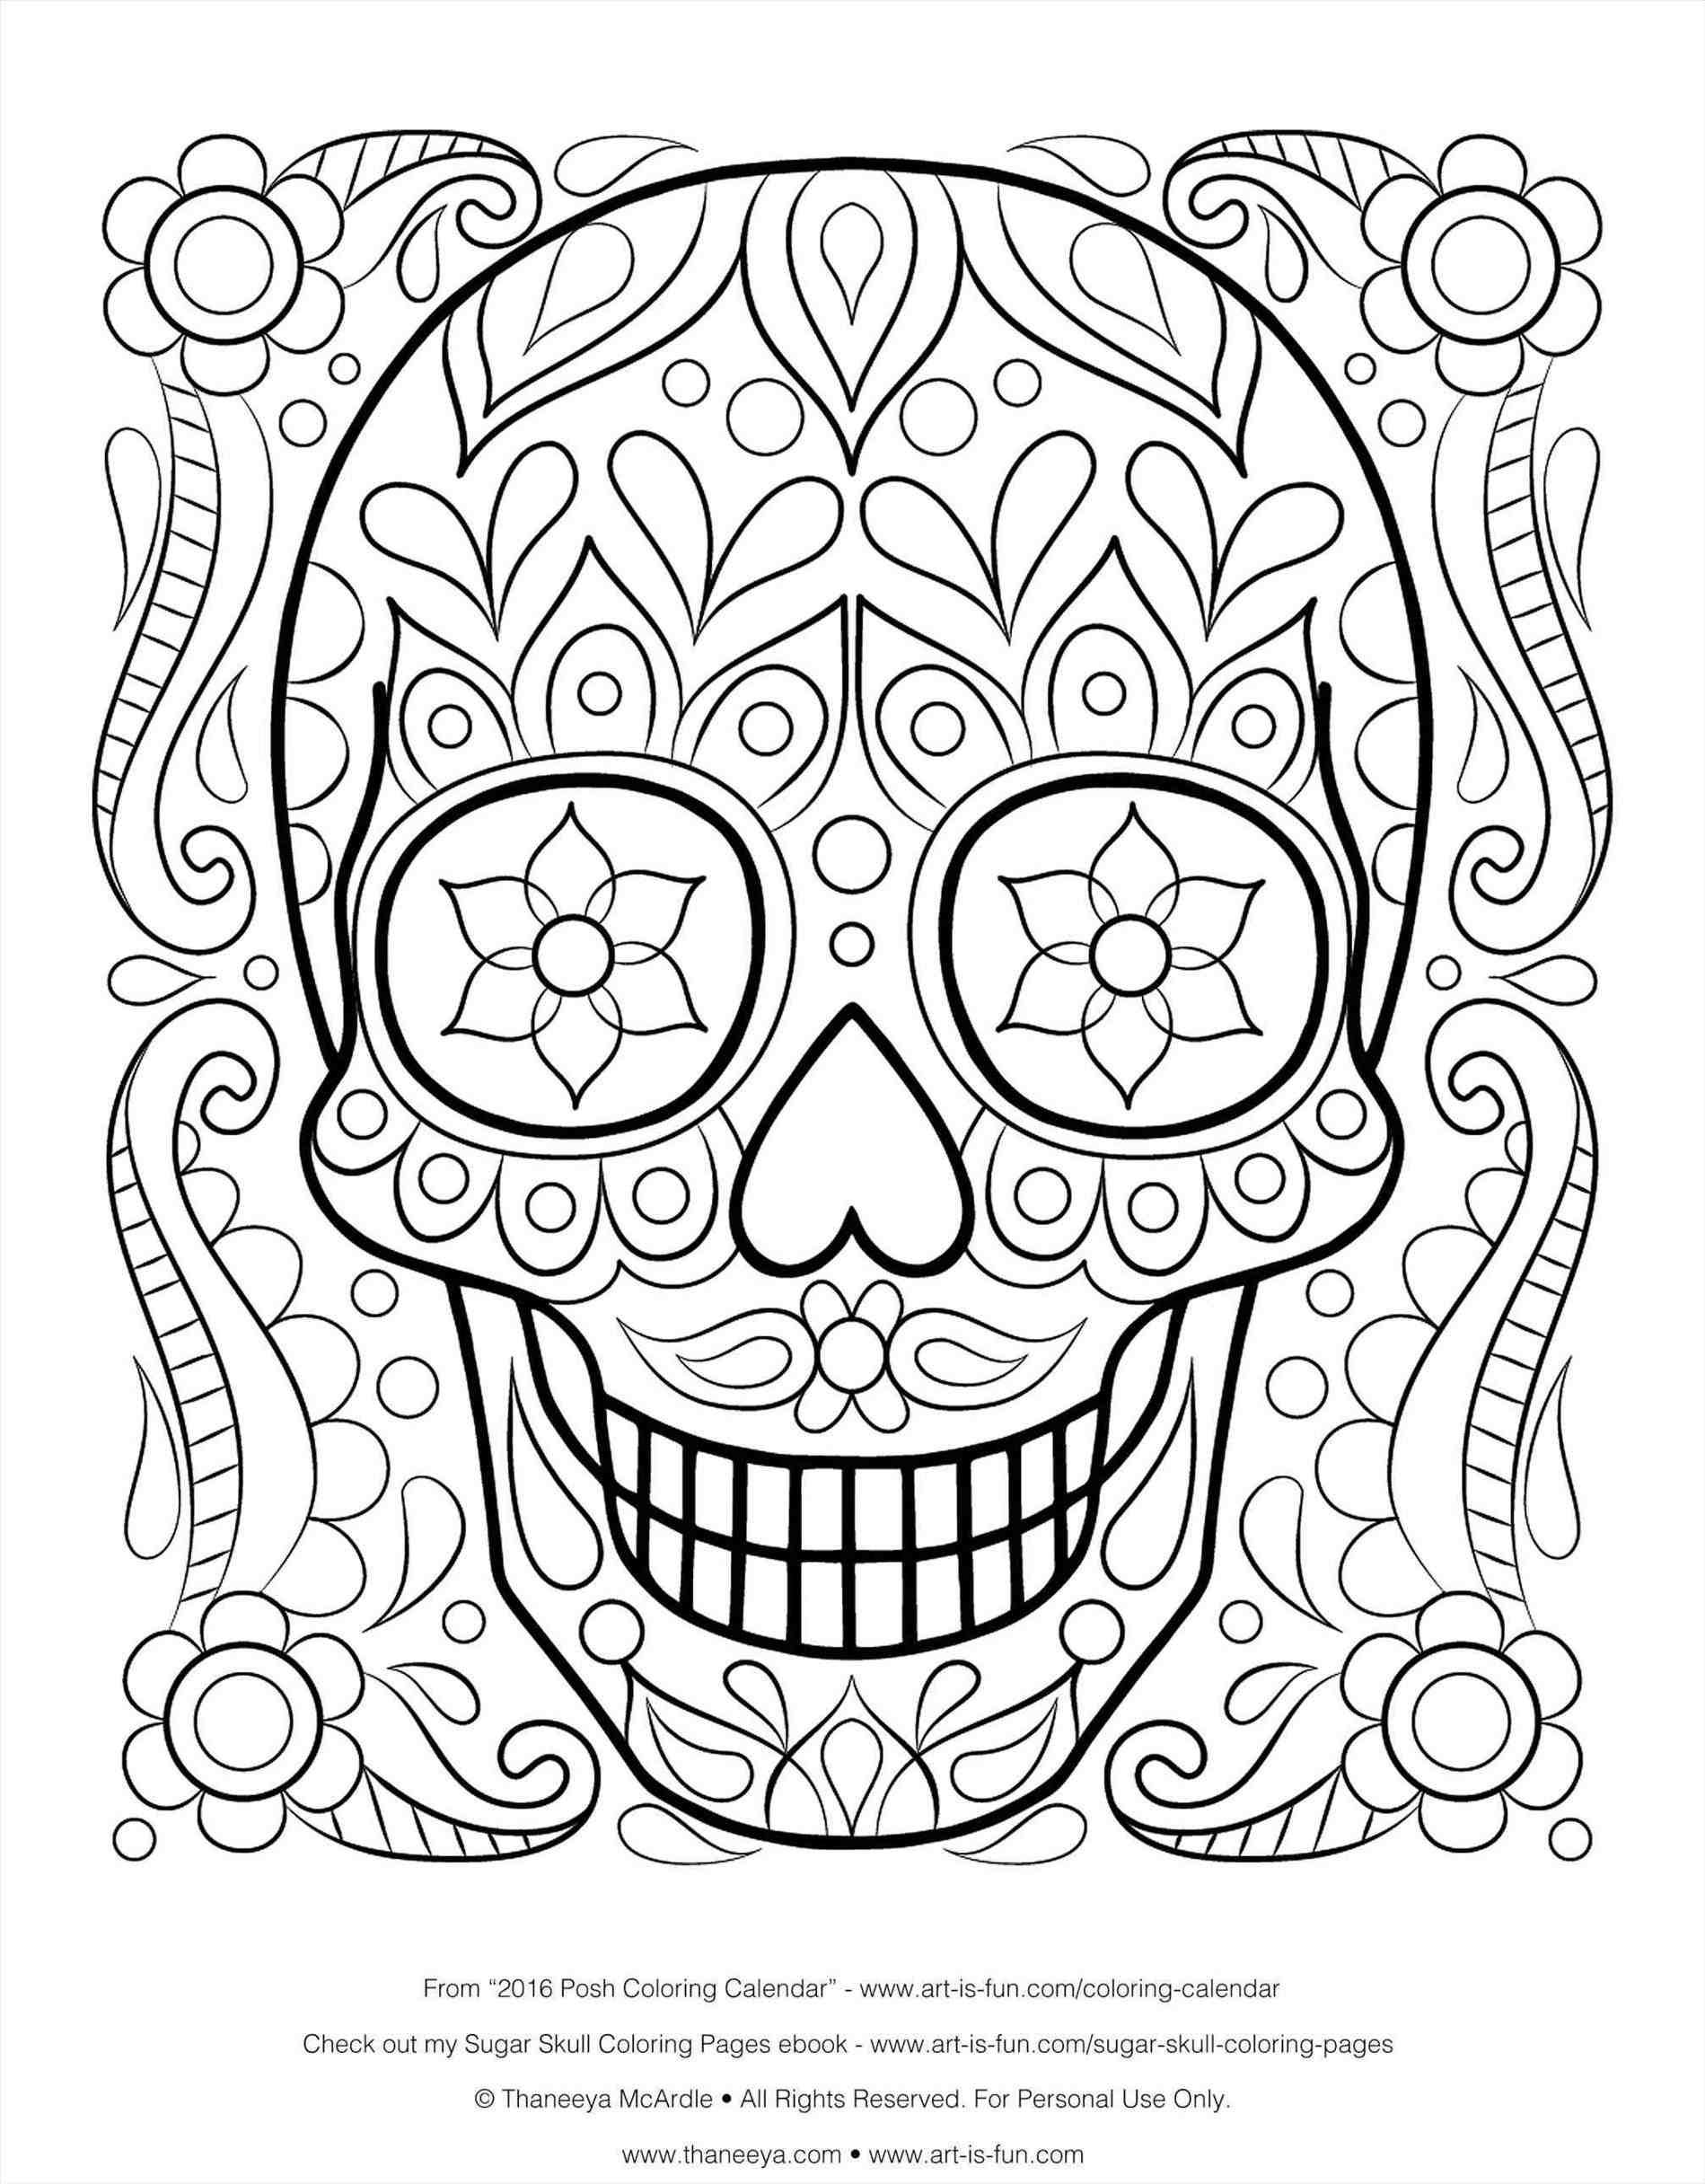 Printable Sugar Skull Candy Tattoo For Tatouage Of Simple Sugar Skull Coloring Pages Collect Skull Coloring Pages Detailed Coloring Pages Sports Coloring Pages